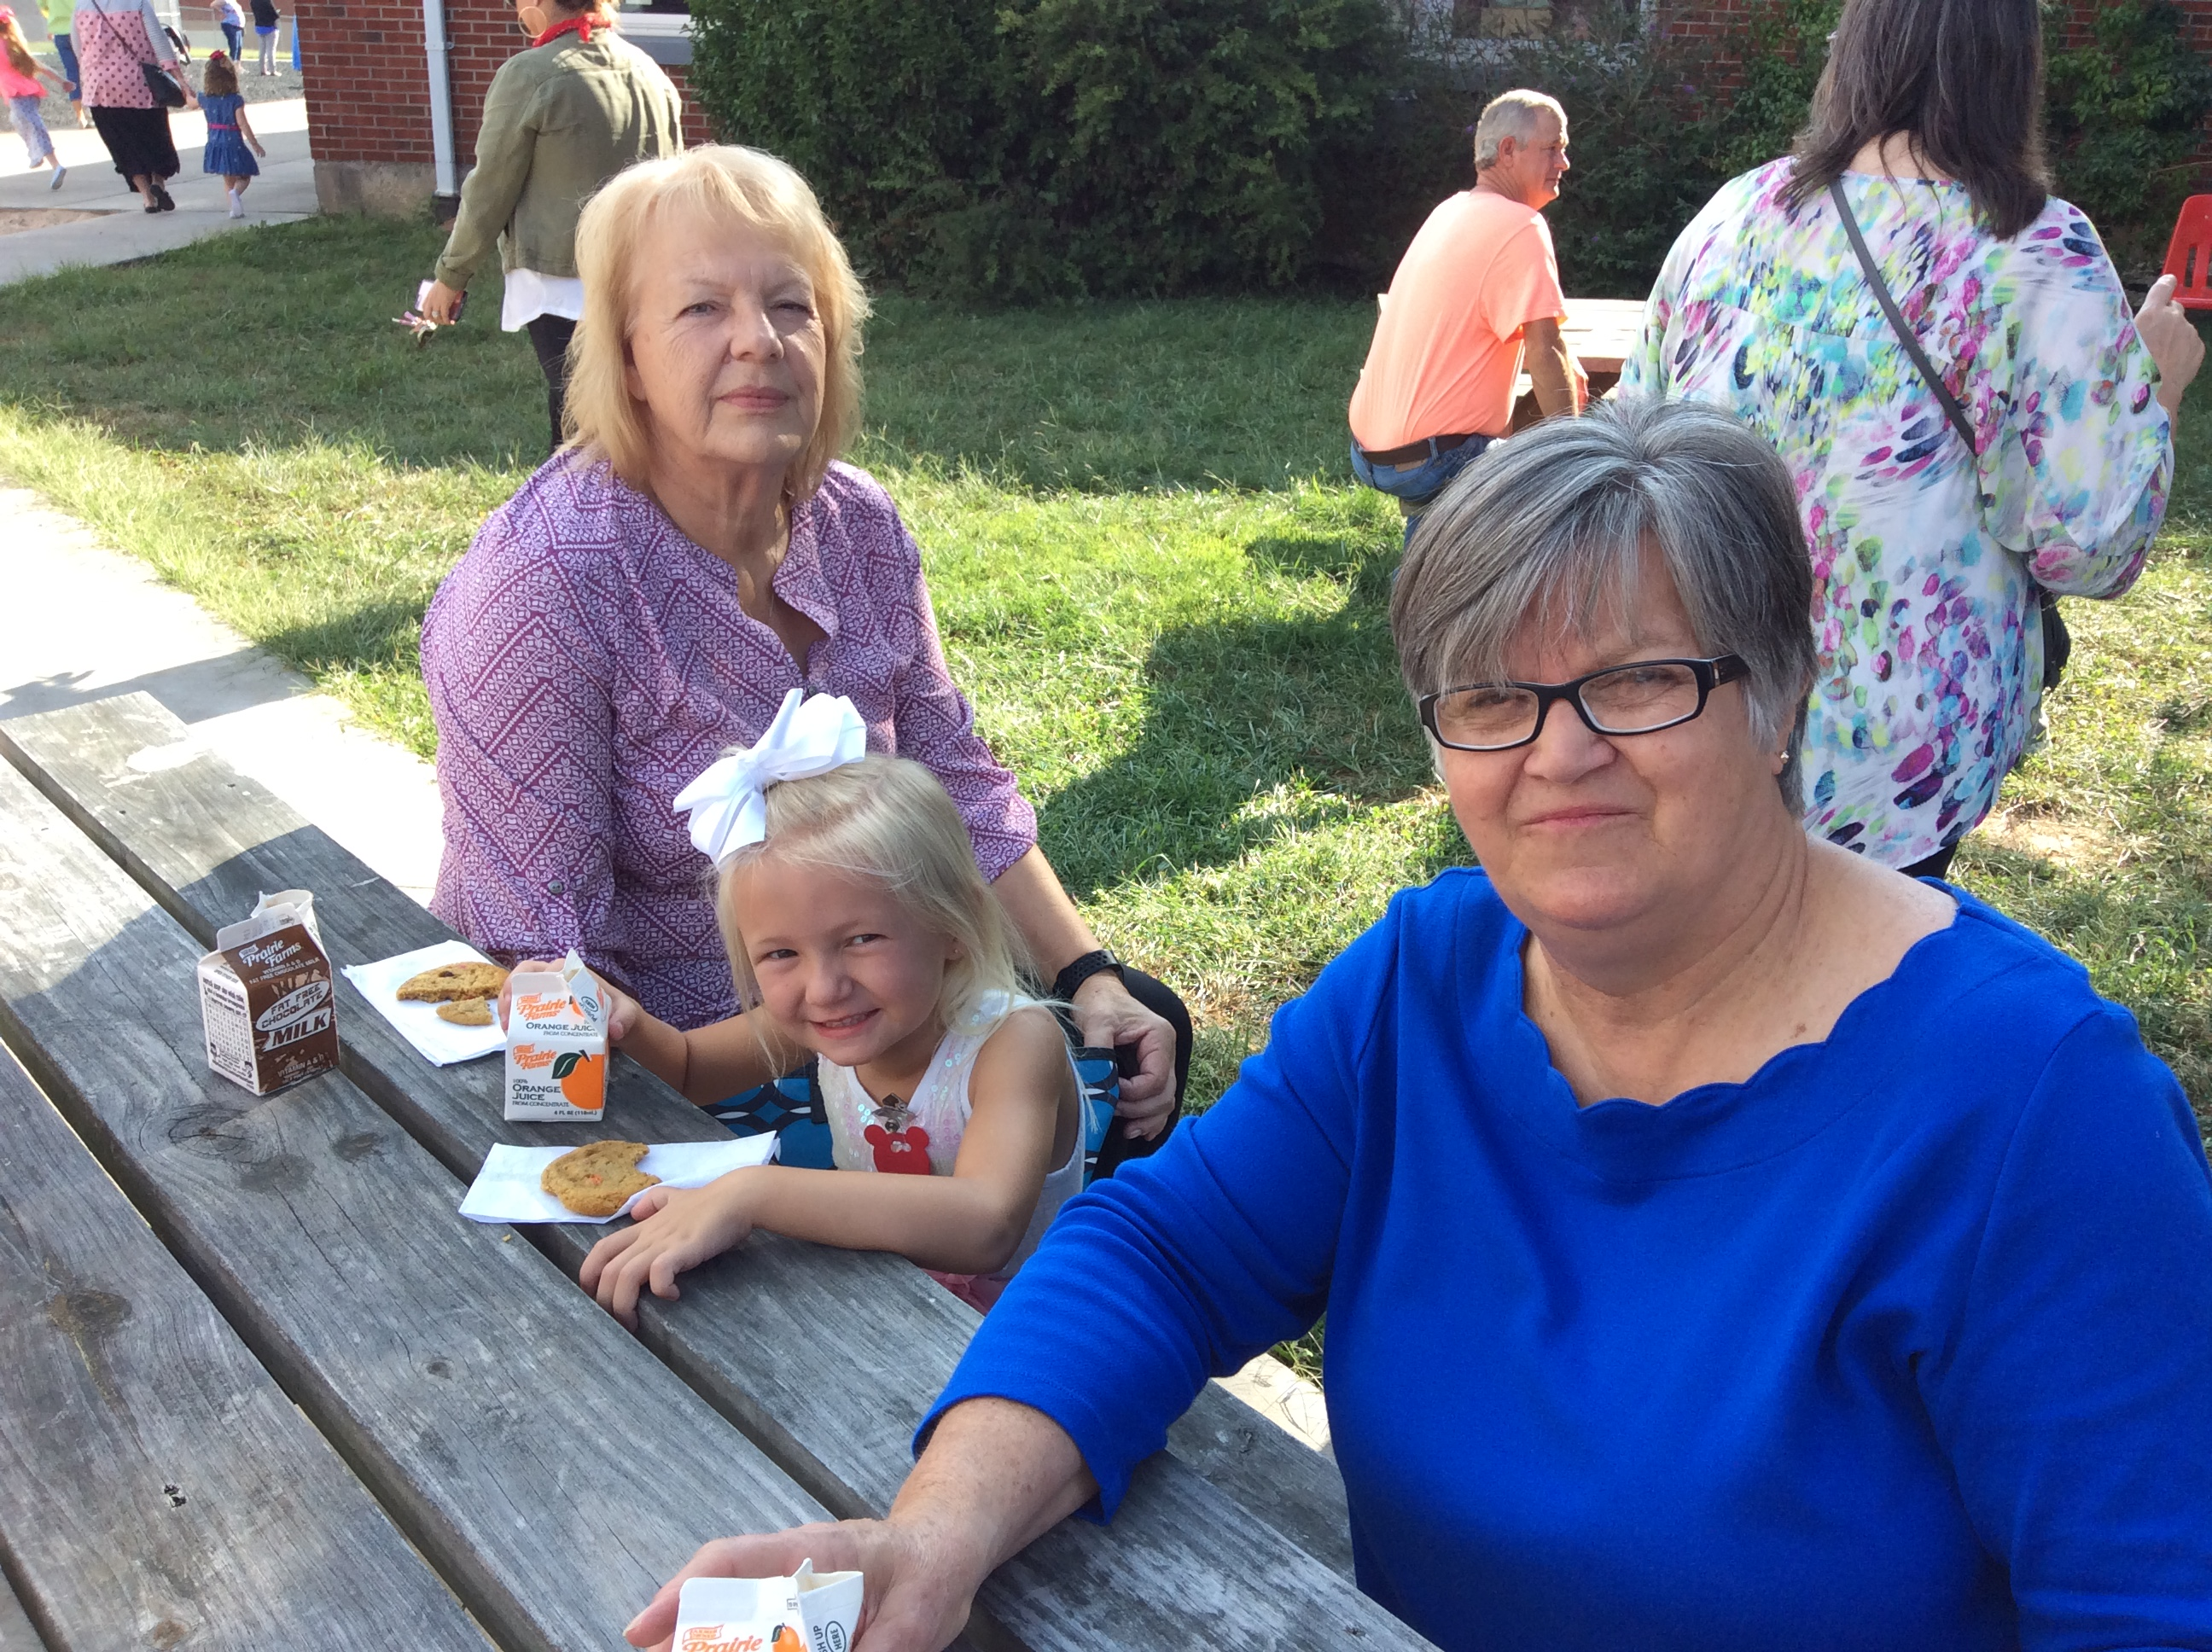 Sue Thompson and Phyllis Flowers sit with granddaughter Pyper Thompson while she finishes her cookie.